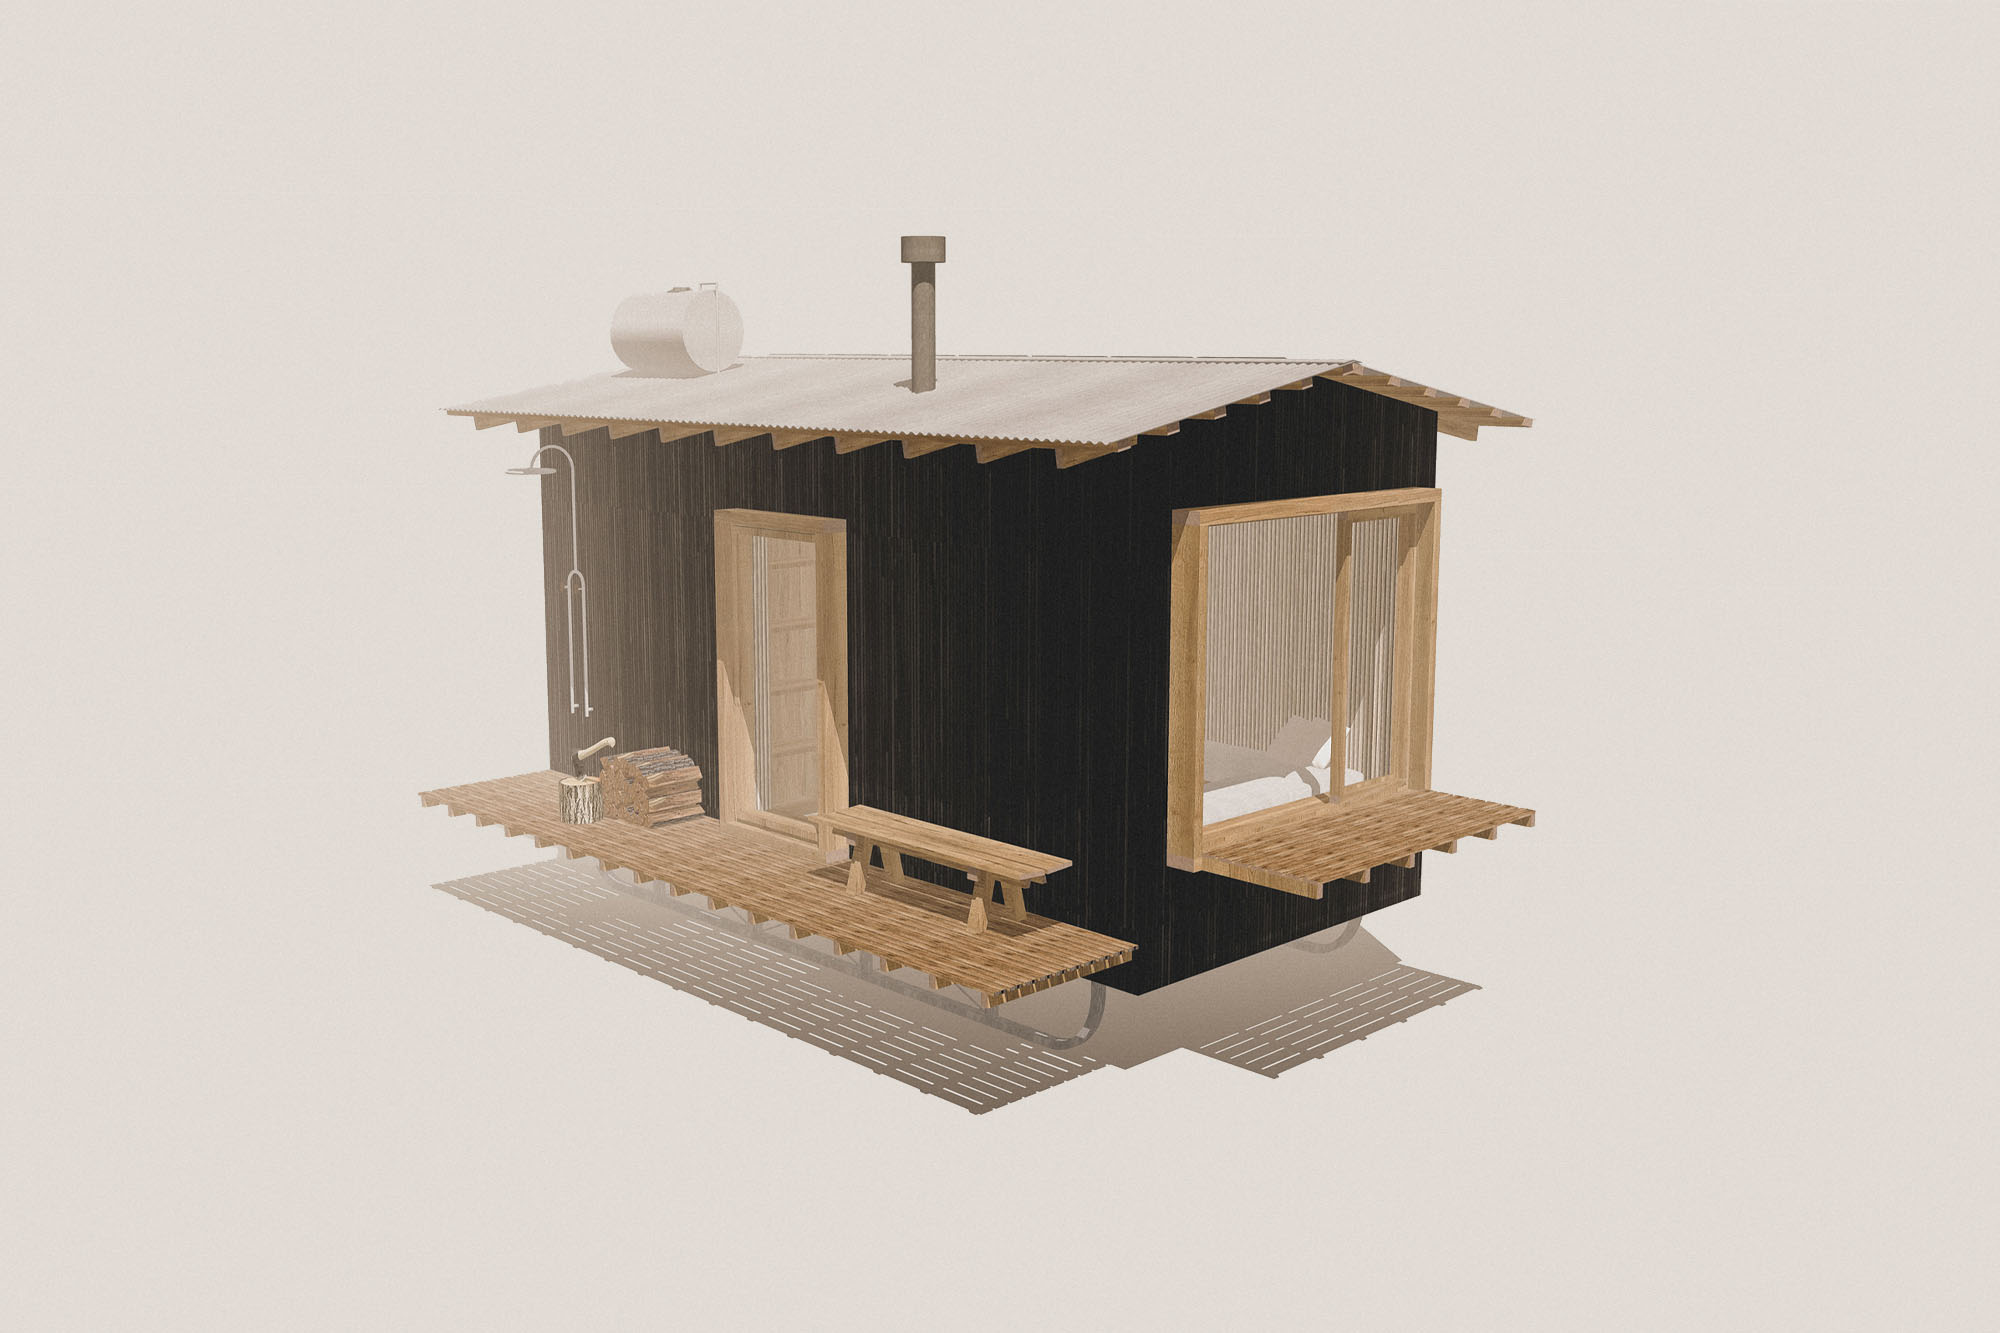 off grid tiny home wooden self contained nomad cabin with living area, bathroom, kitchen, stove, mezzanine bedroom, shower